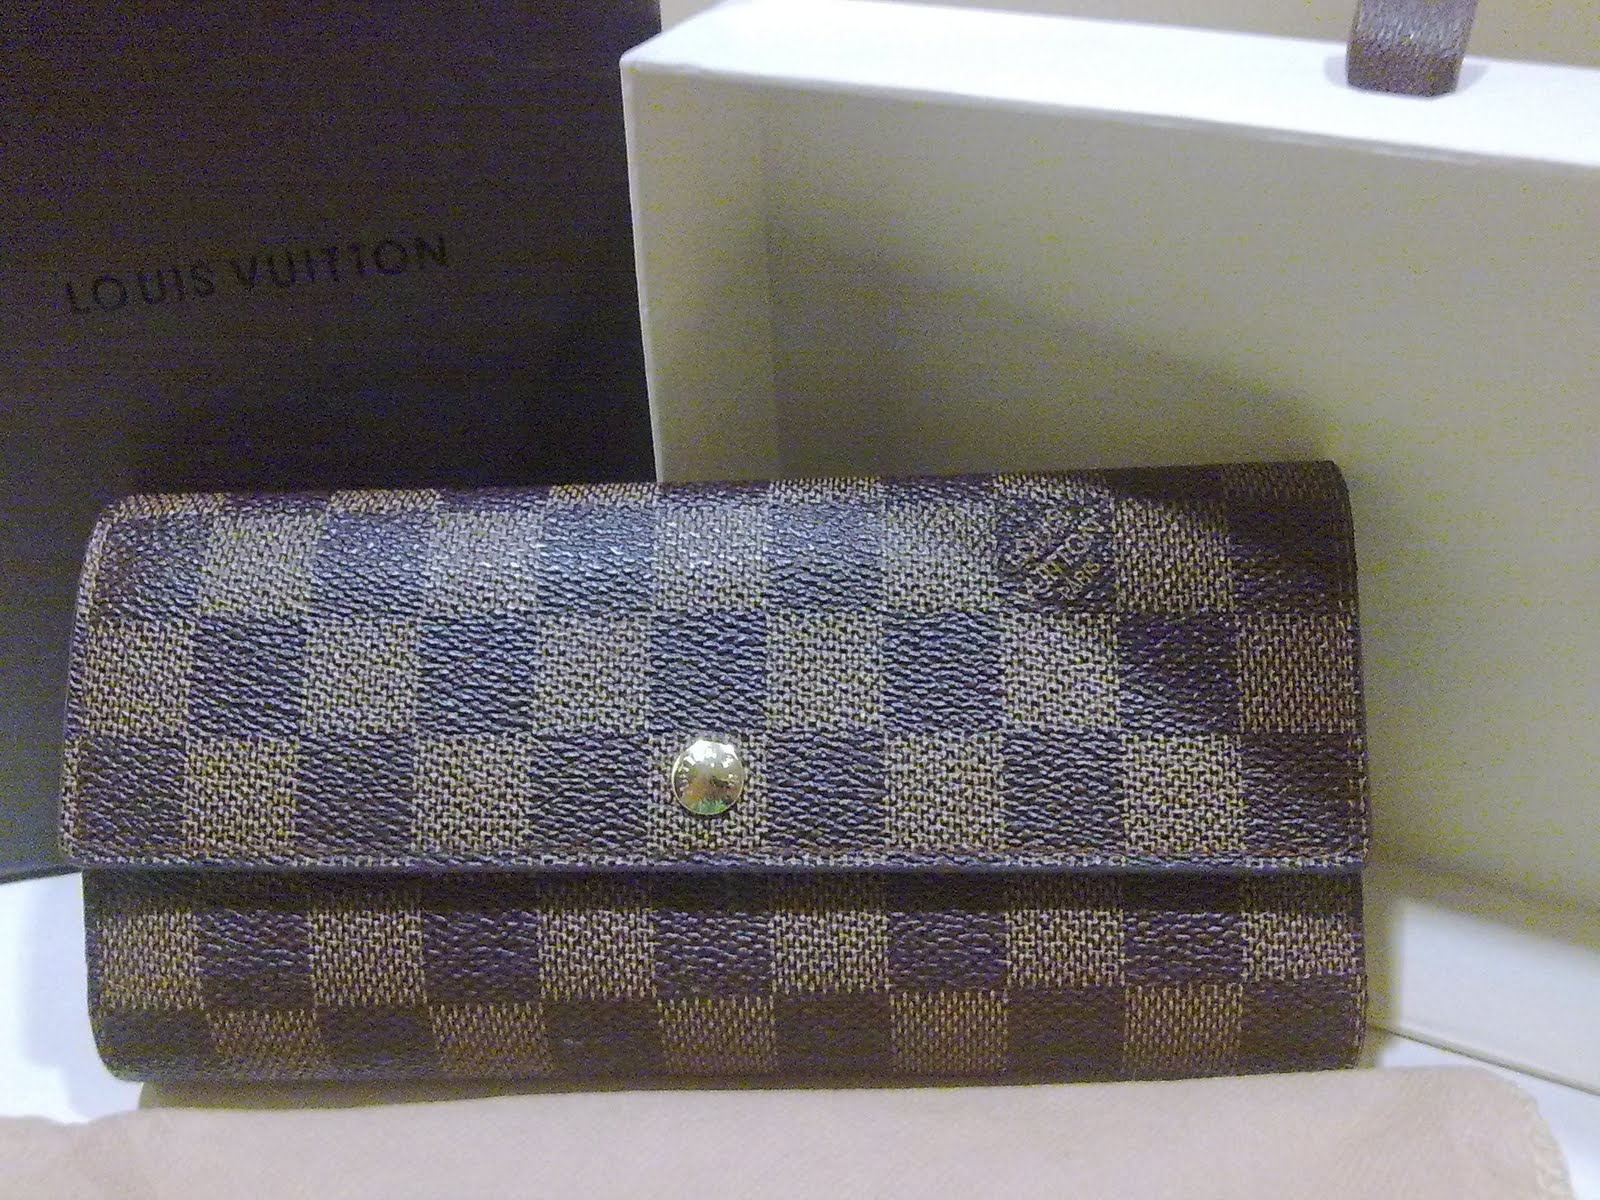 Imsal Louis Vuitton Lv Gucci Prada Chanel Coach Handbags And Purse Or Wallets For If You Have Your Own Desired Design Model Send Me The Pics